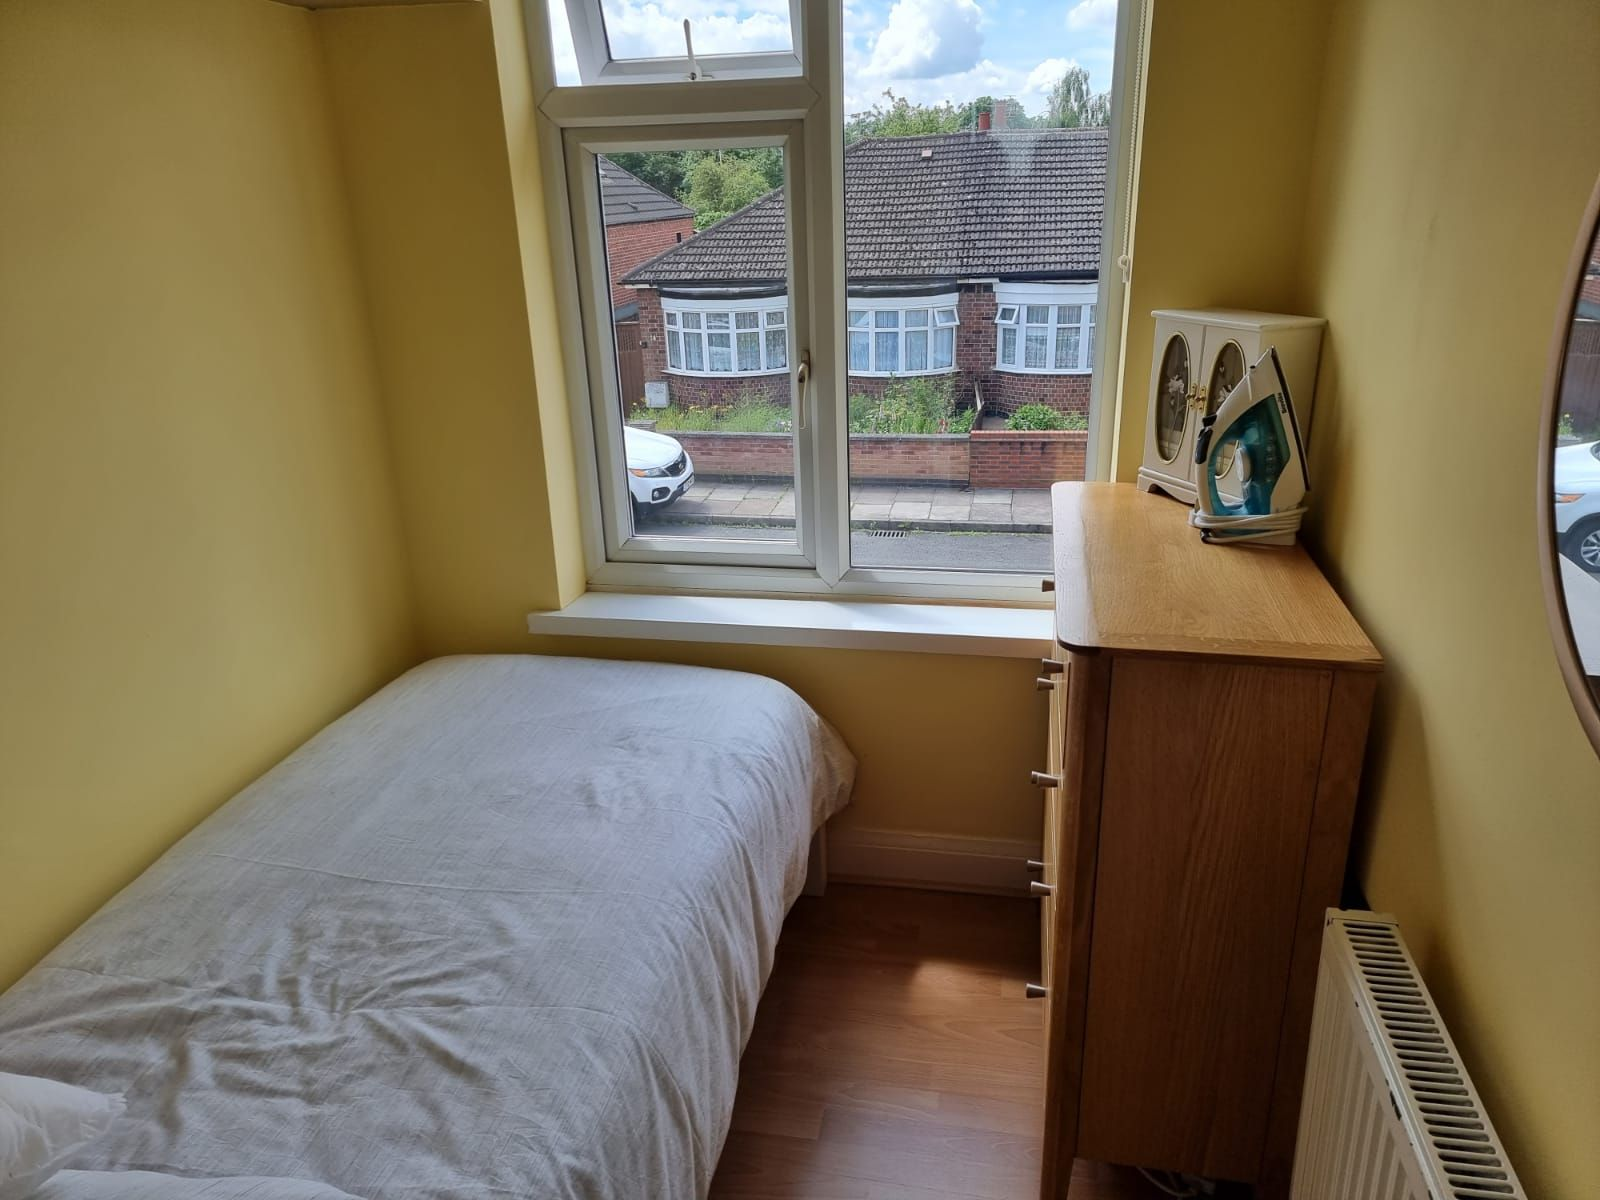 3 bedroom semi-detached house SSTC in Leicester - Photograph 9.